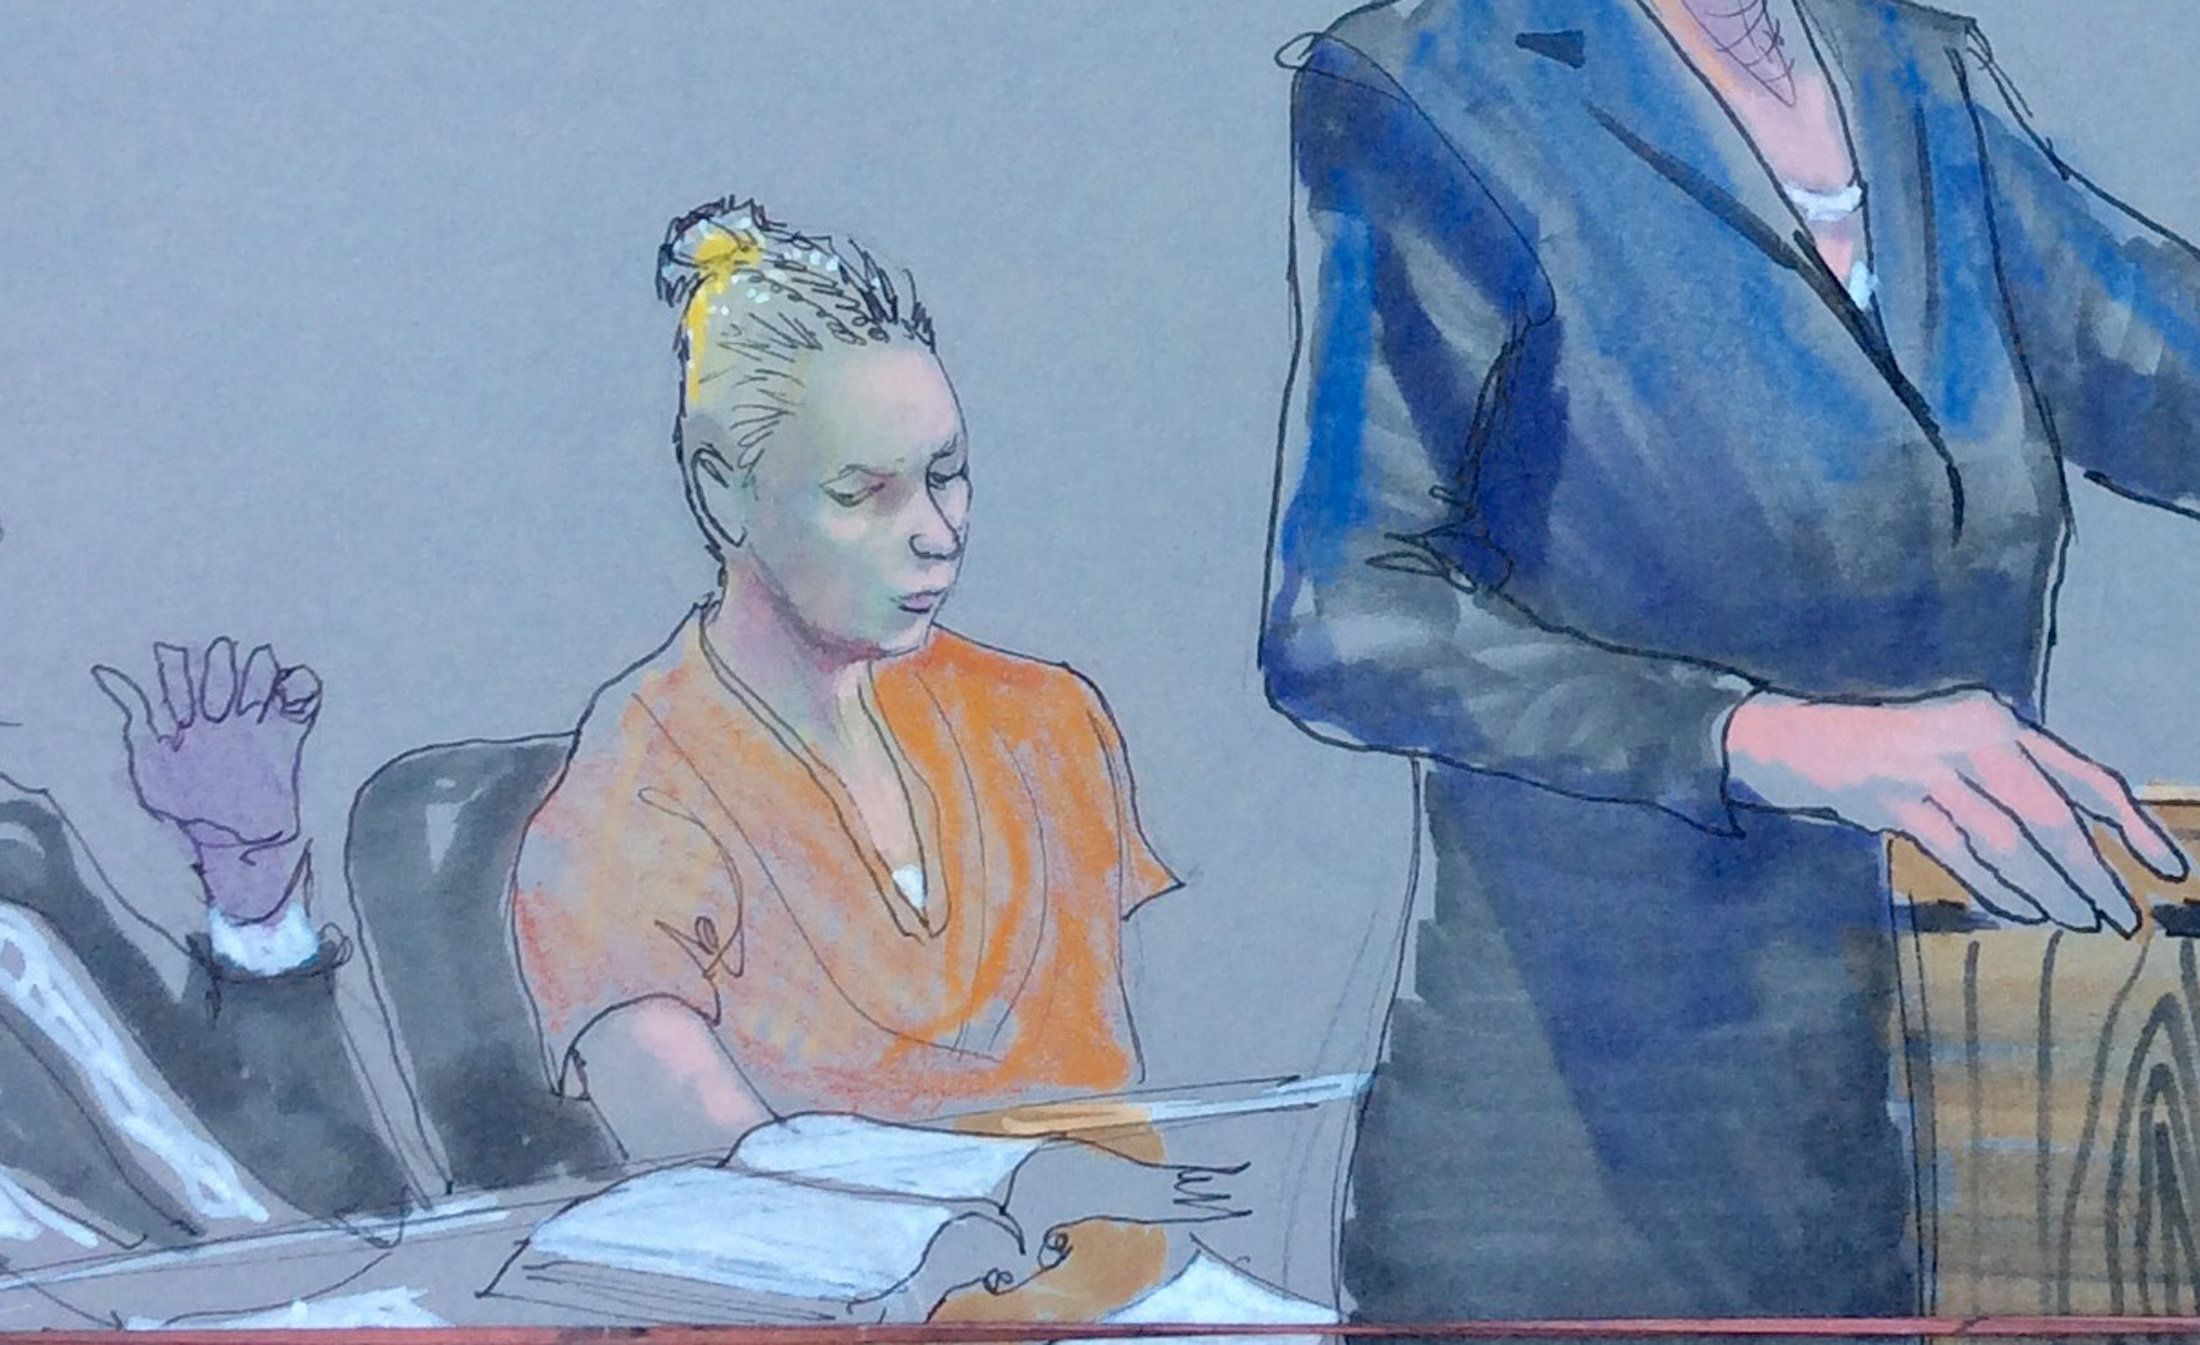 Reality Winner (C), the U.S. intelligence contractor charged with leaking classified National Security Agency material is shown in this courtroom sketch during her hearing at the U.S. District Courthouse in Augusta, Georgia, U.S., June 8, 2017.  Courtesy Richard Miller via REUTERS   EDITORIAL USE ONLY. MANDATORY CREDIT.